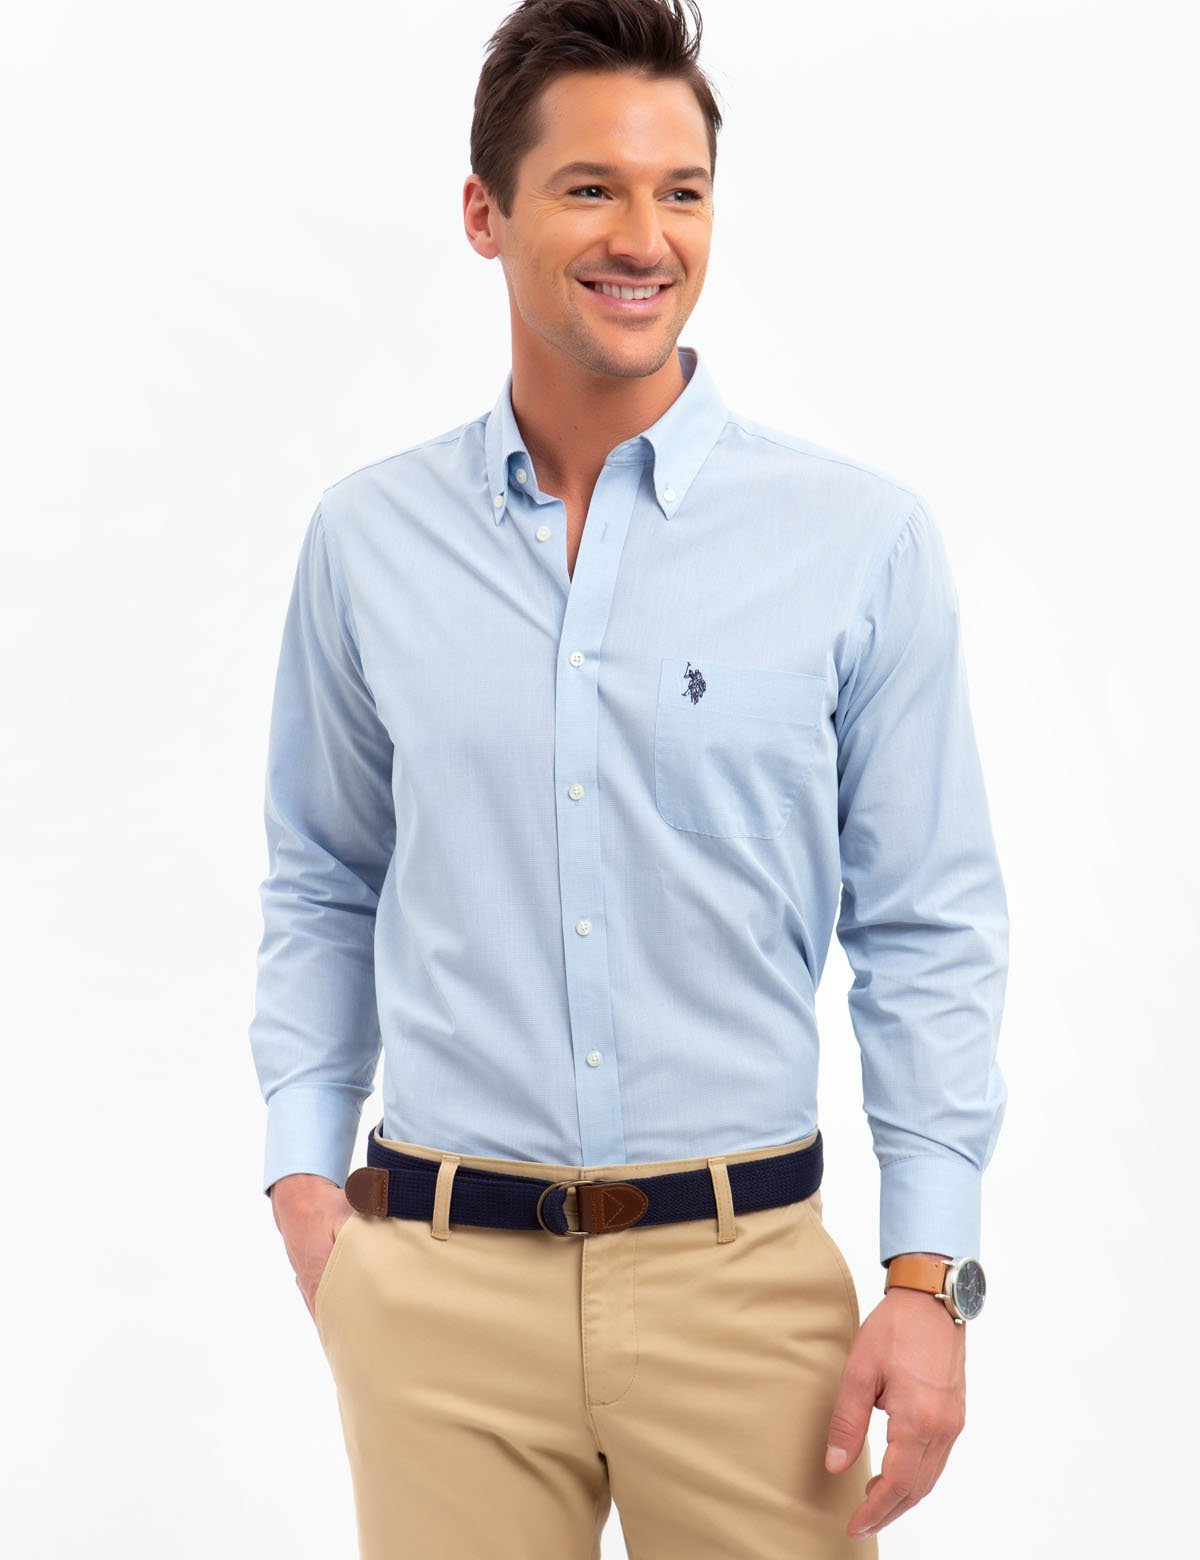 HORIZONTAL STRIPED DRESS SHIRT - U.S. Polo Assn.